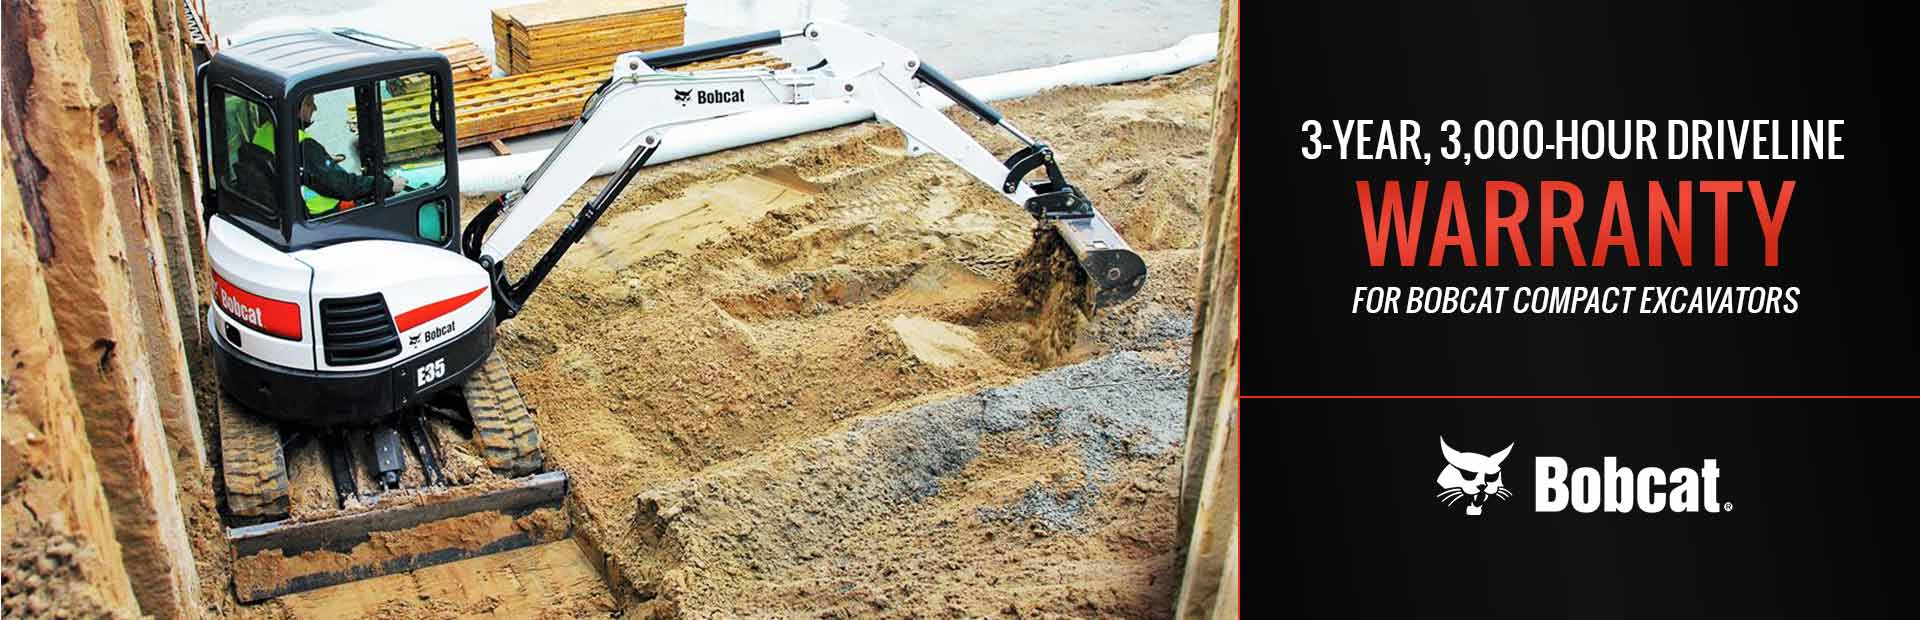 Bobcat: 3Yr 3KHr Driveline Warranty for Compact Excavators